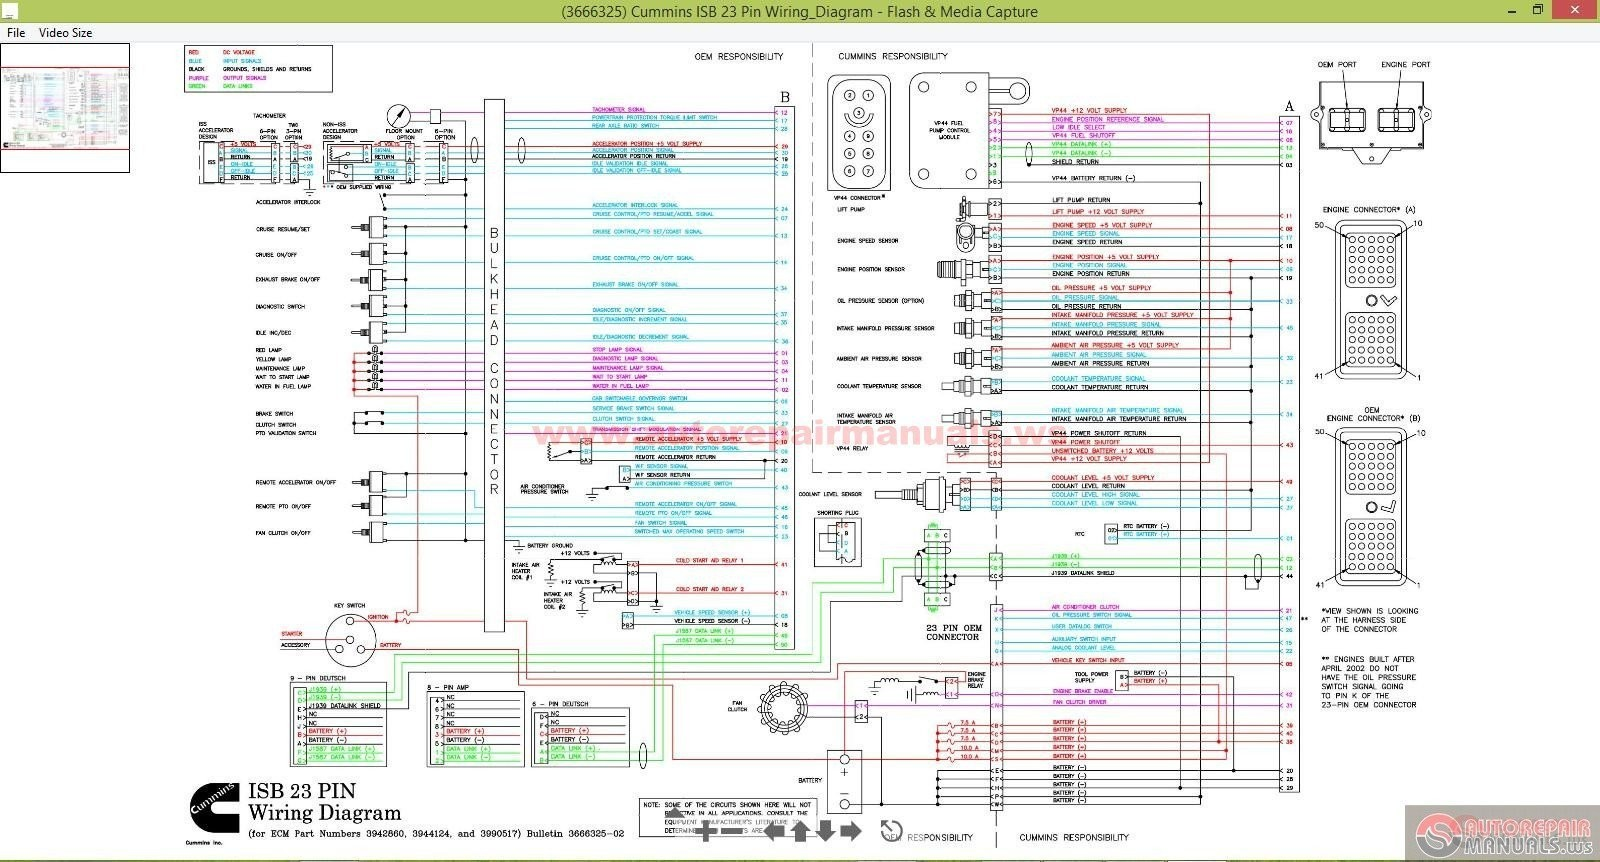 Caterpillar C7 Engine Wiring Diagram Besides Cummins Isx Ecm